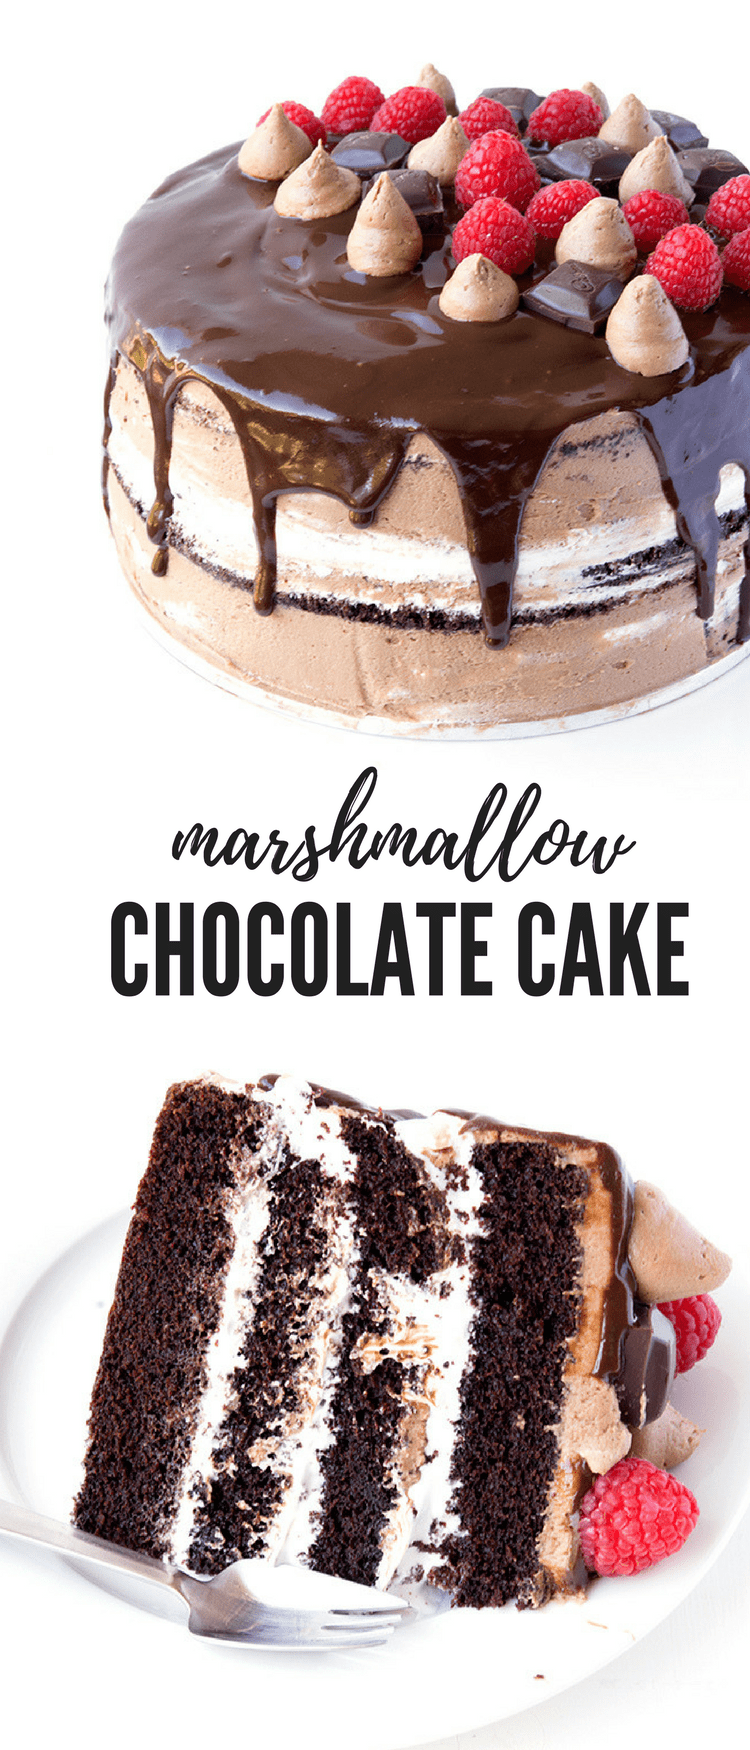 This gorgeous Raspberry Marshmallow Chocolate Layer Cake is AMAZING. Chocolate cake with layers of marshmallow frosting, creamy chocolate frosting and dark chocolate ganache. Recipe from sweetestmenu.com #cake #marshmallow #chocolate #raspberries #dessert